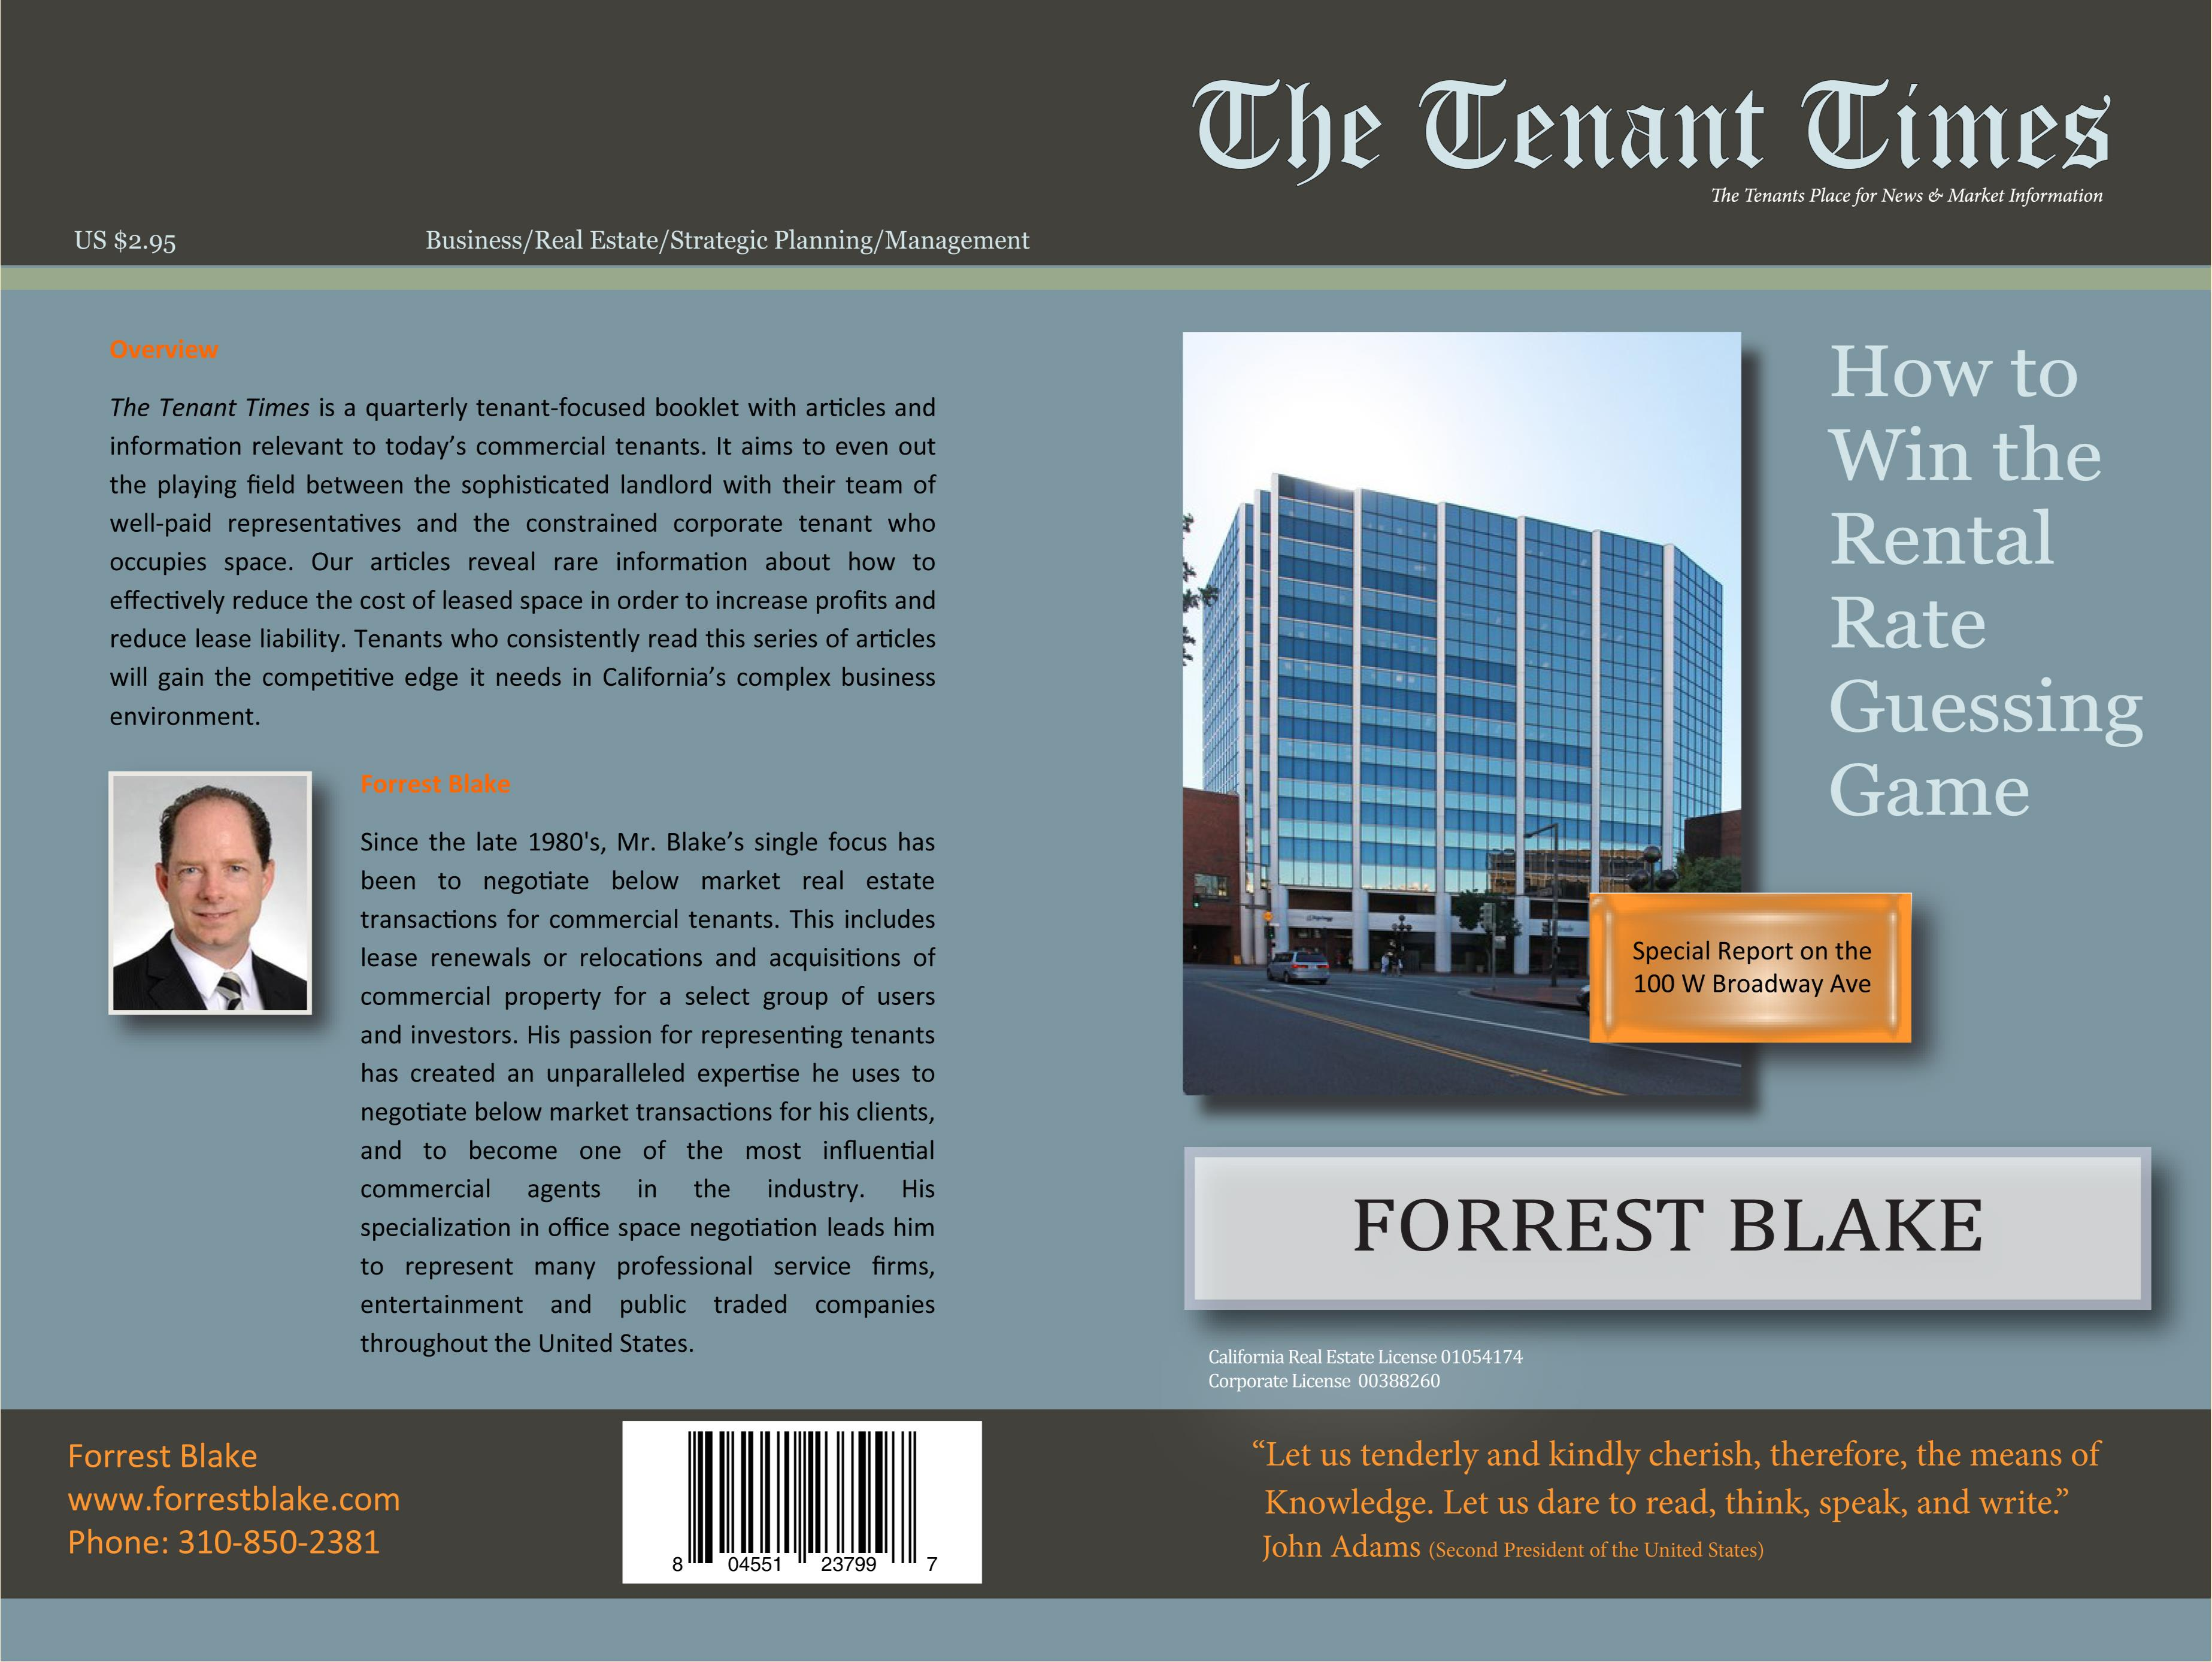 2Q Tenant Times 100 W Broadway cover image